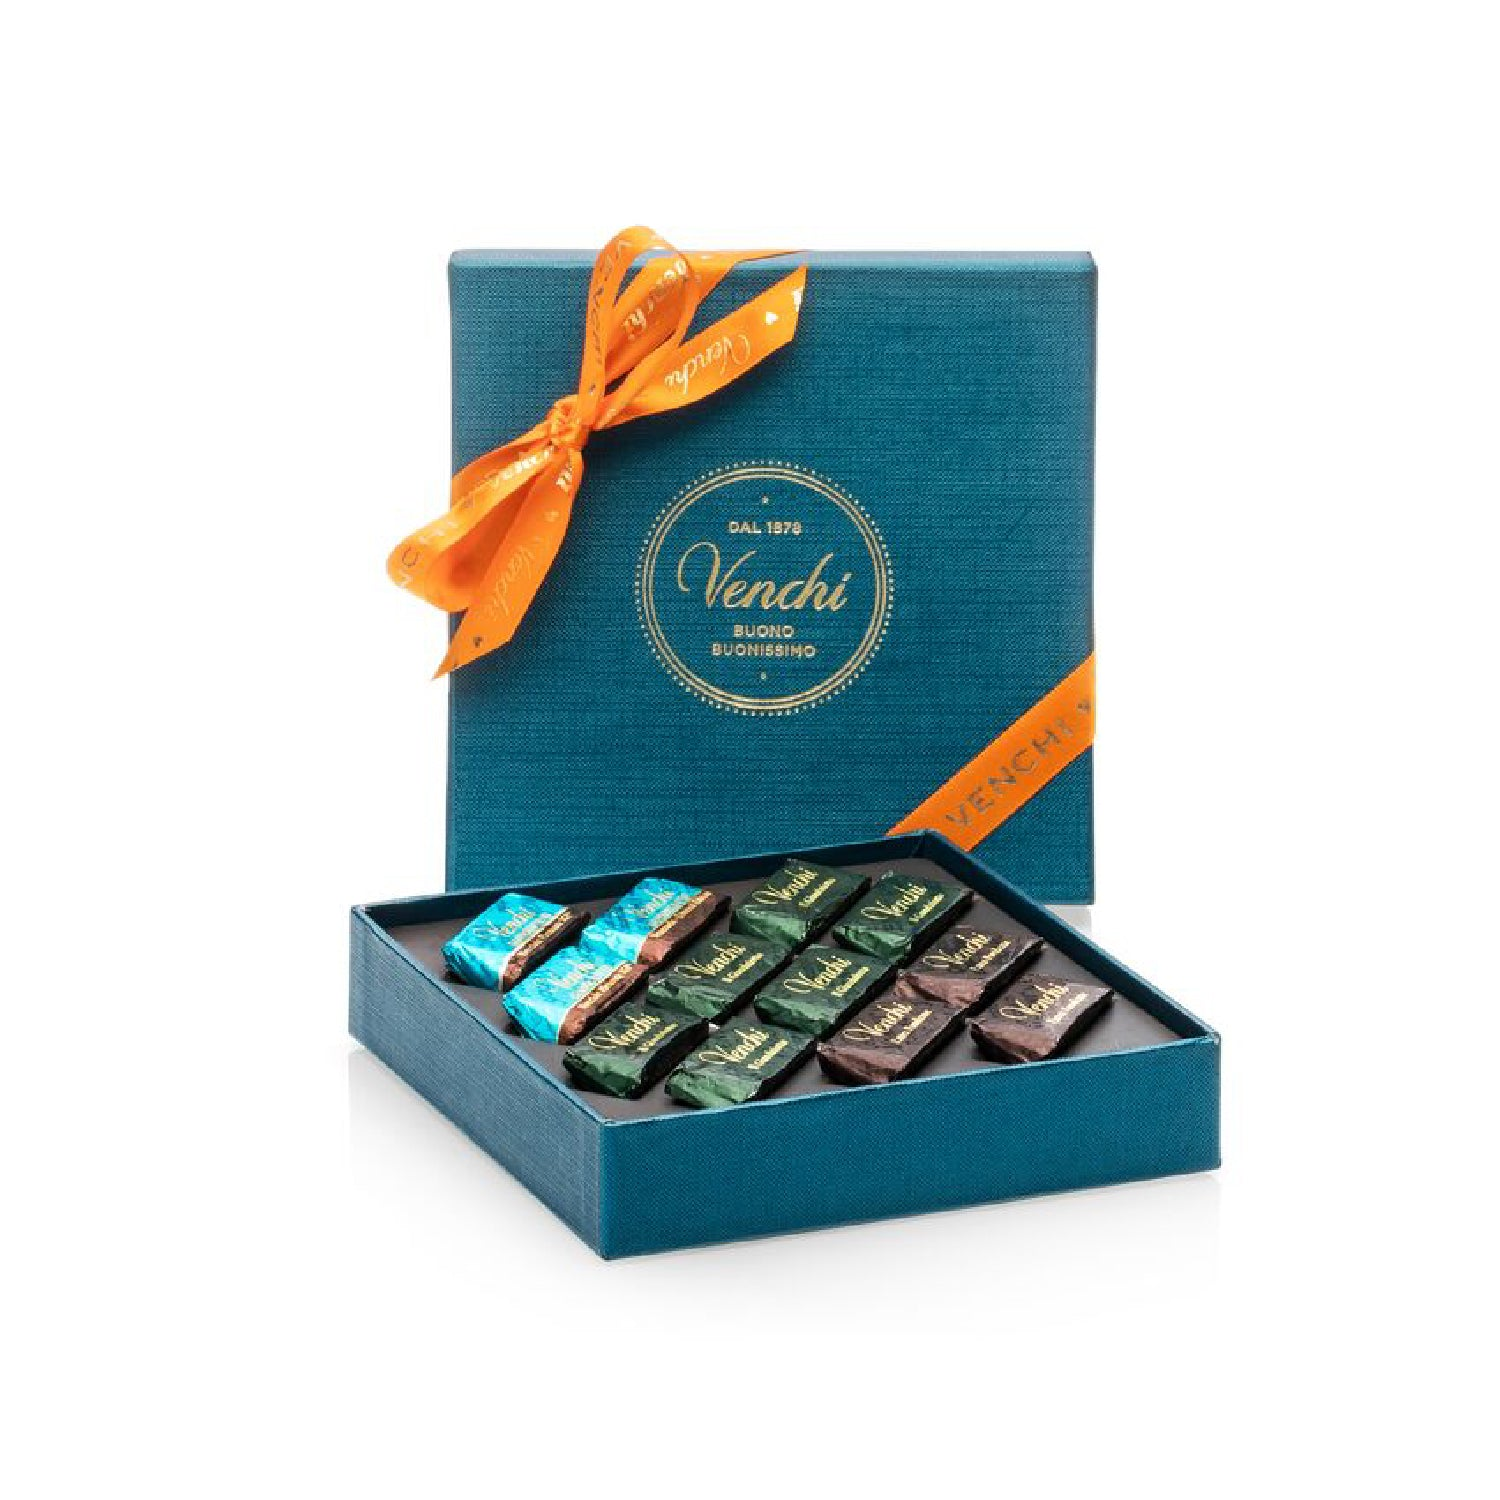 Assorted Giandujotti Petrol Blue Square Box 106g